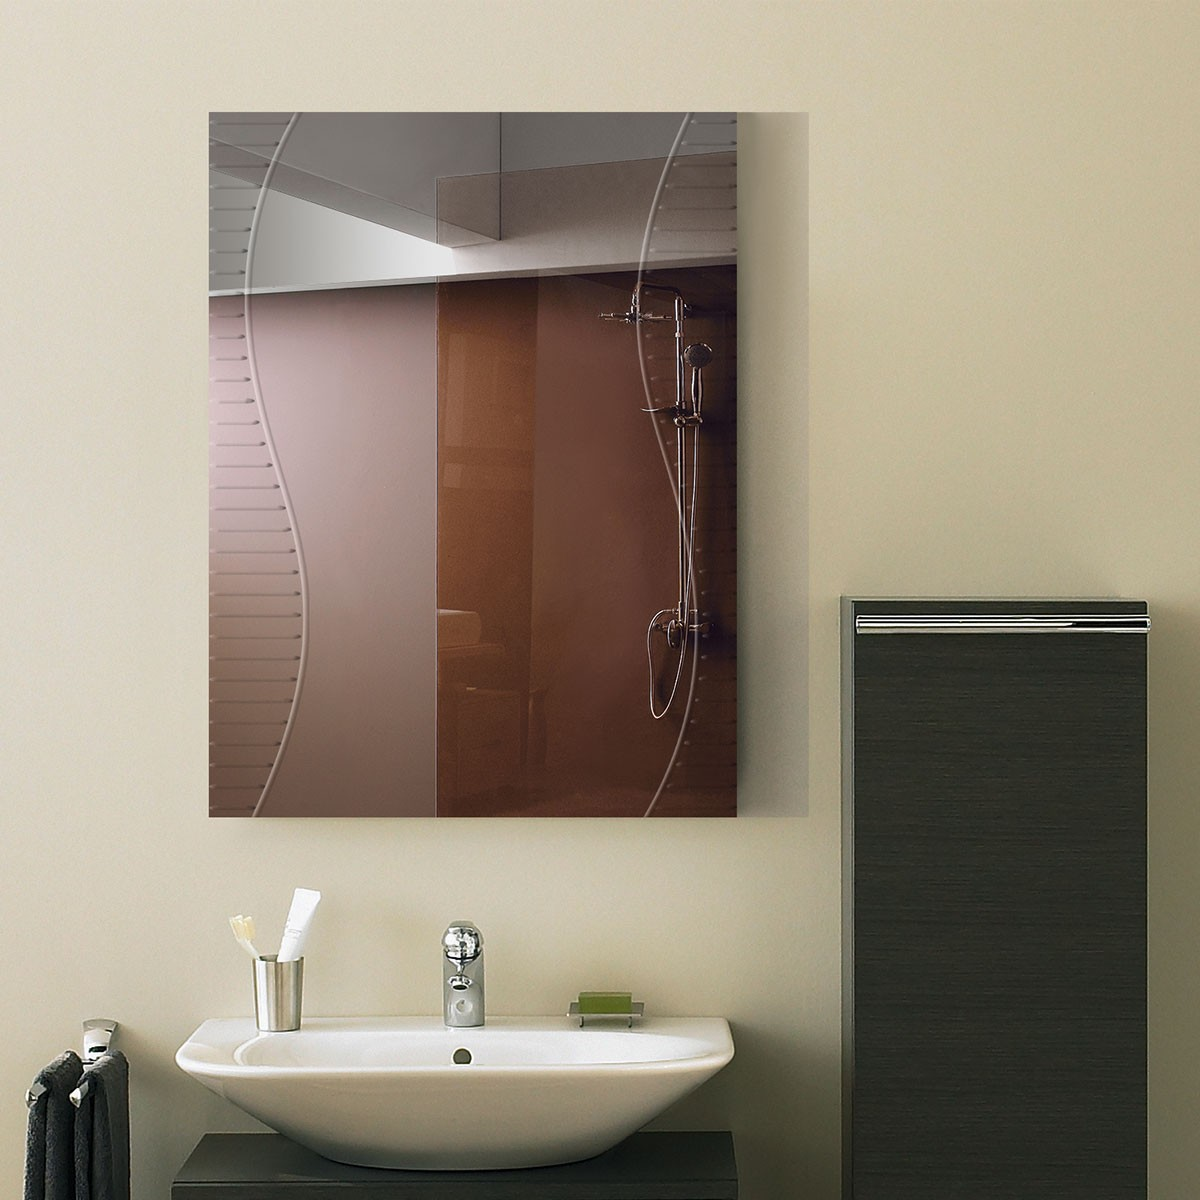 24 x 18 po miroir mural salle de bain classique rectangulaire sans cadre accrochage vertical. Black Bedroom Furniture Sets. Home Design Ideas